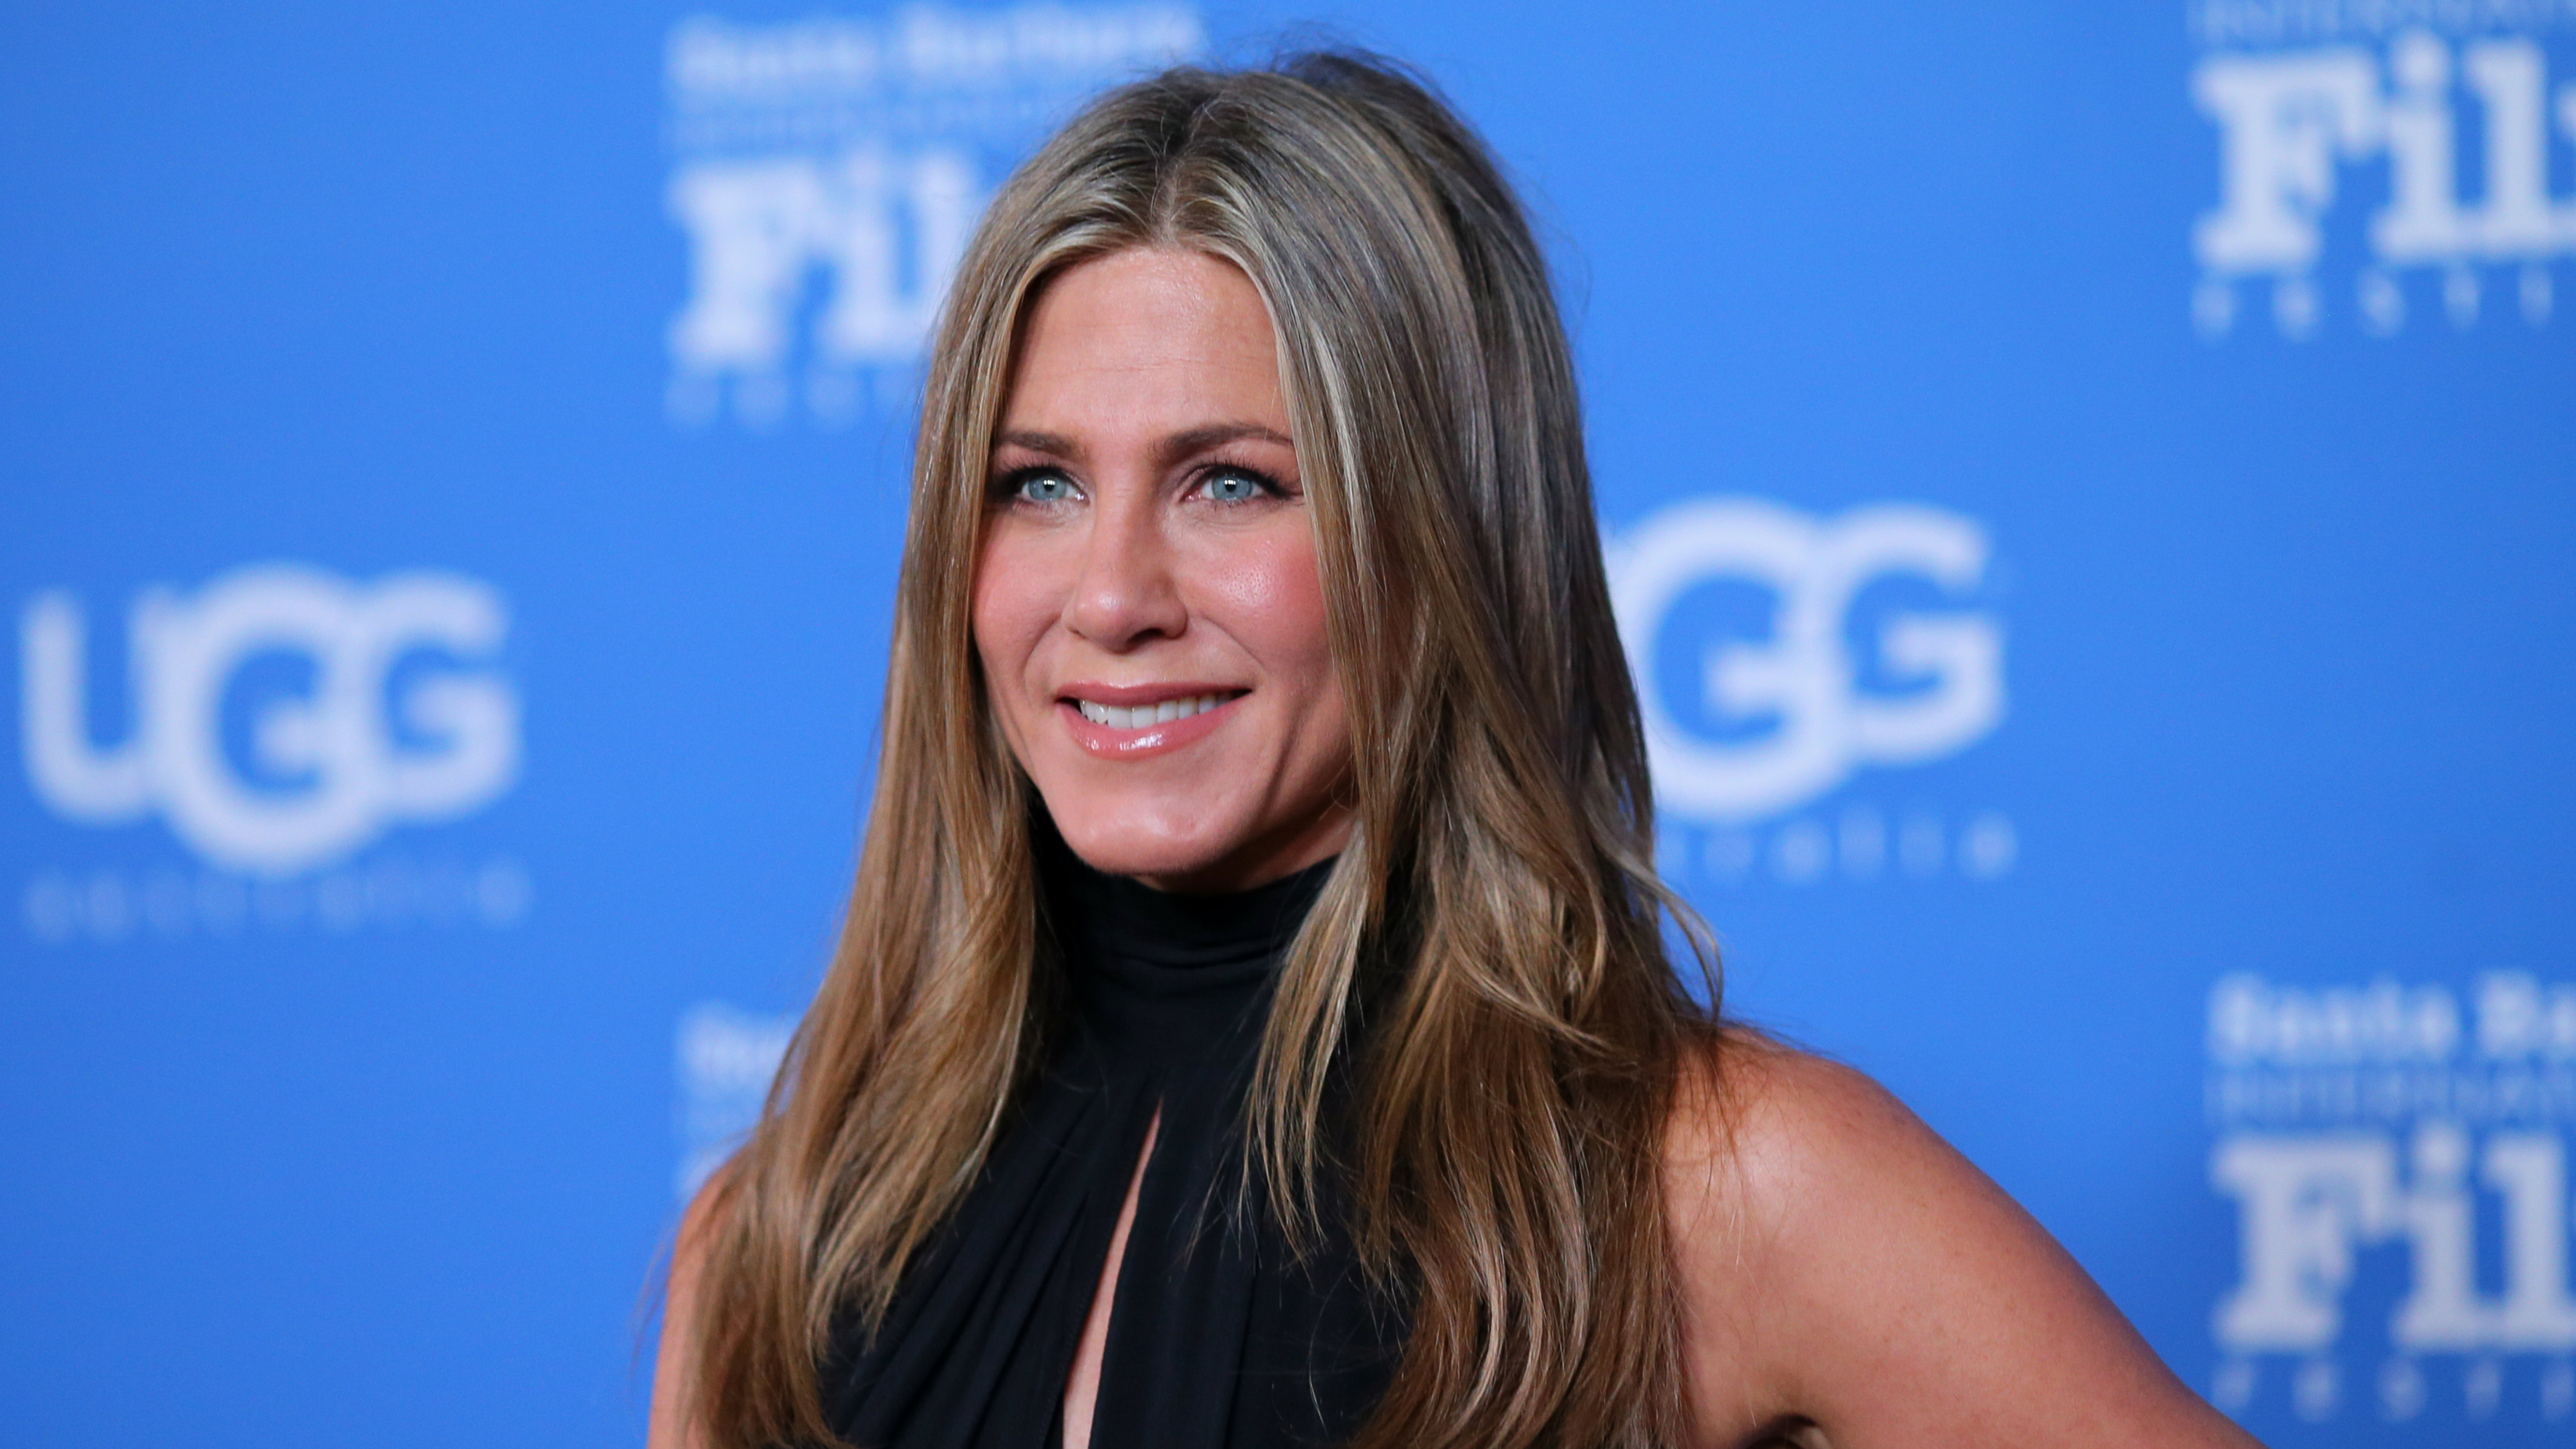 Jennifer Aniston Dishes Her Secret to Looking Better Than Ever at 50: 'Happiness Is the Big Key'